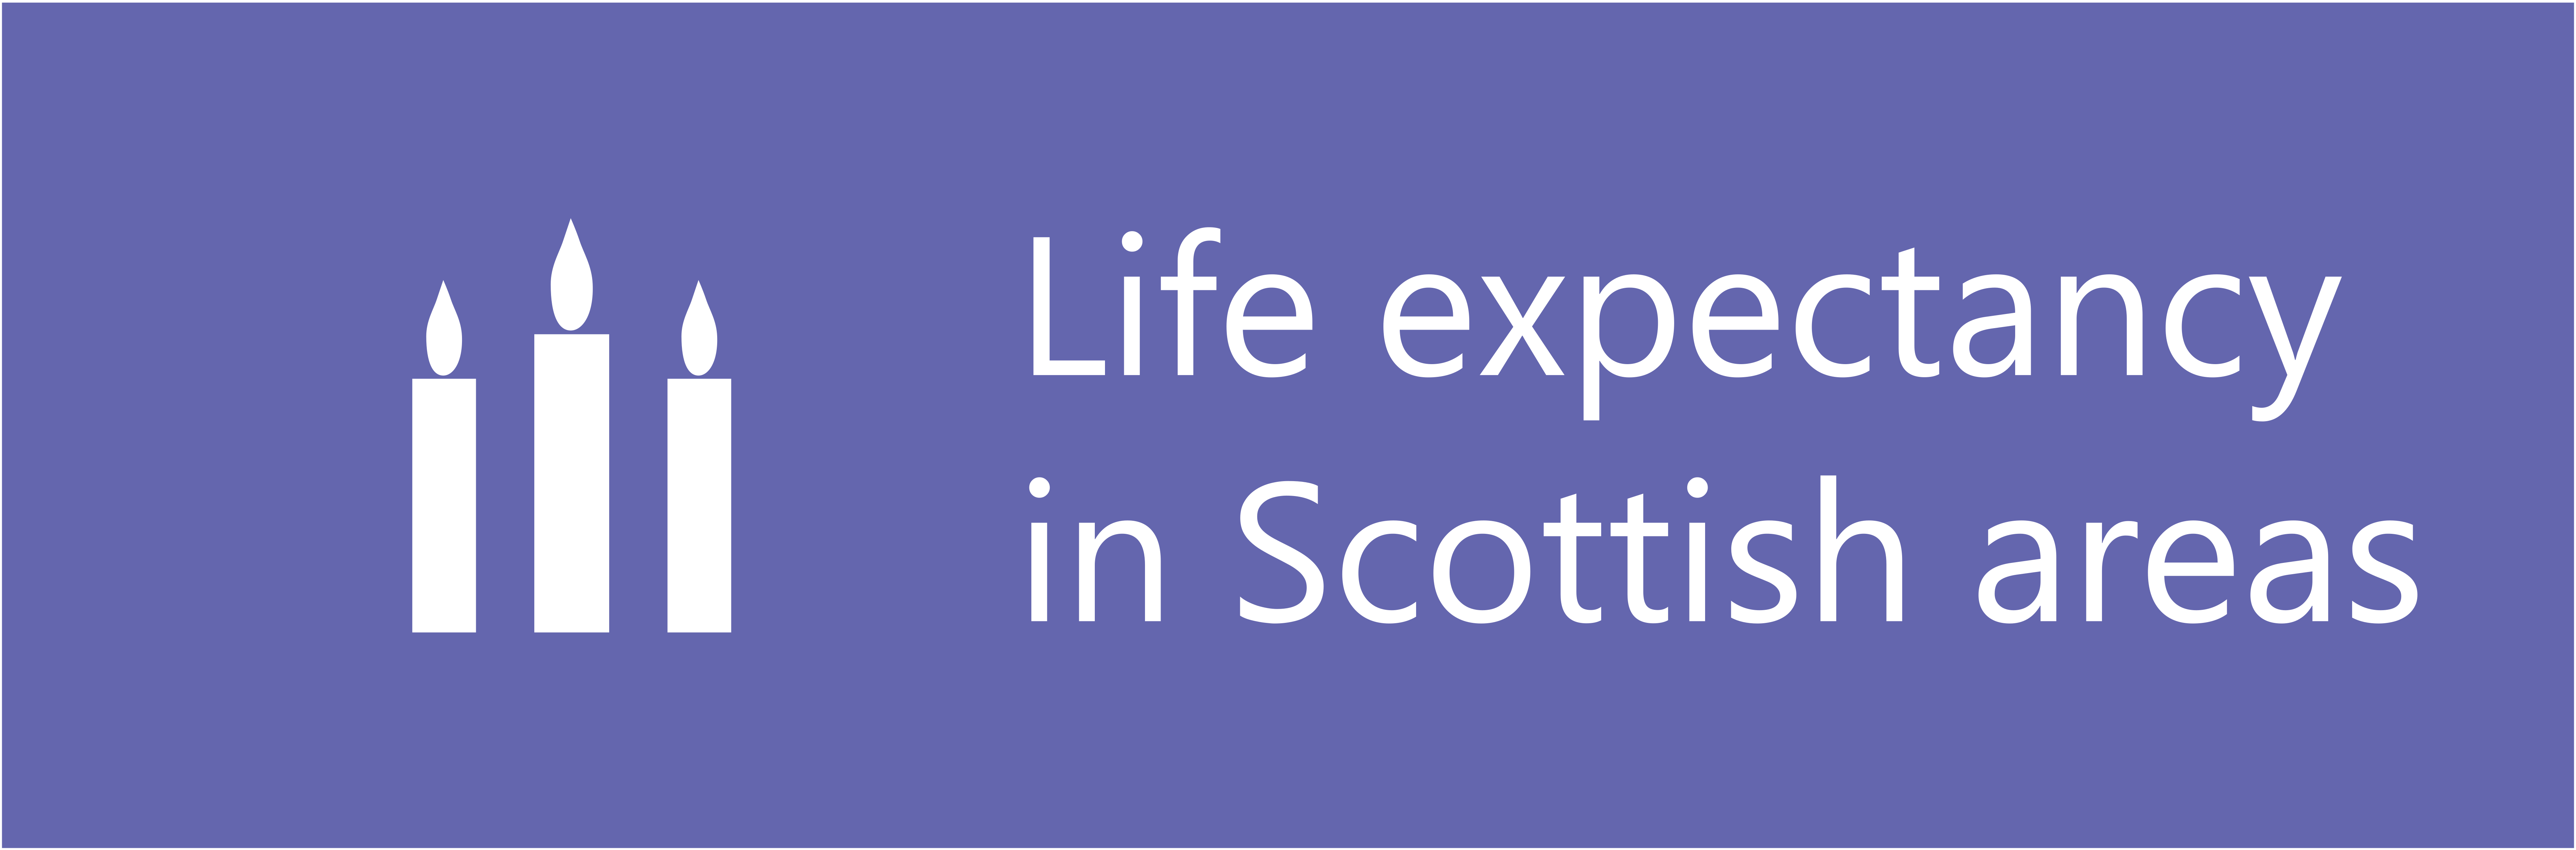 Links to Life Expectancy for Scottish Area, 2015-17 infographic